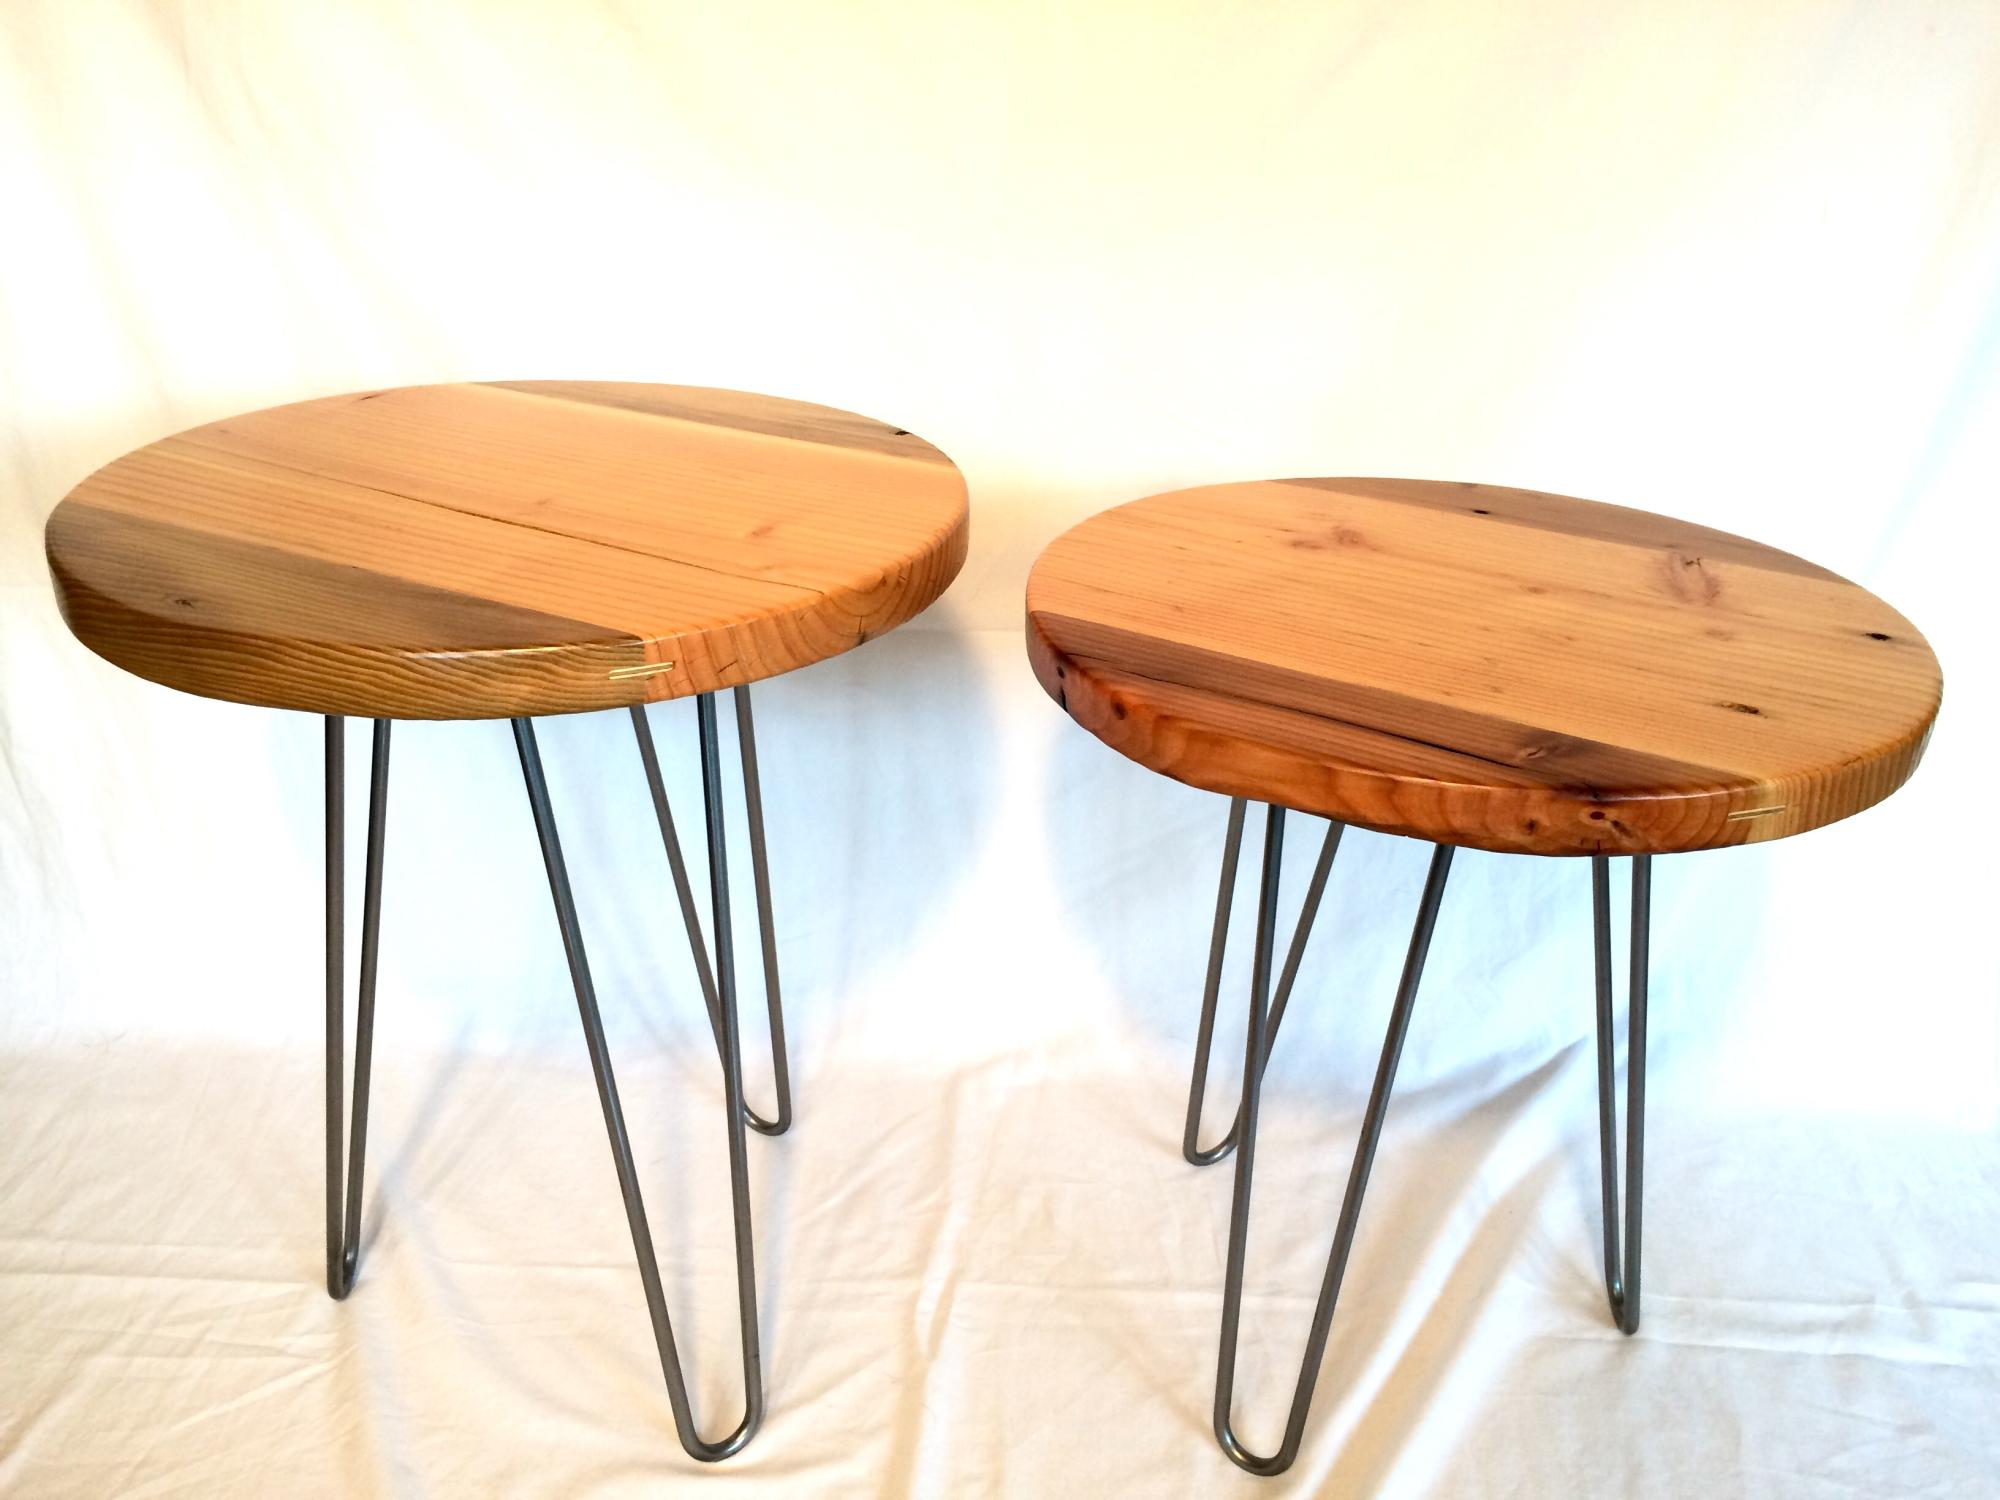 Drift lumber classic round tables w/steel hairpin legs.  19Dx19&21H  $225ea